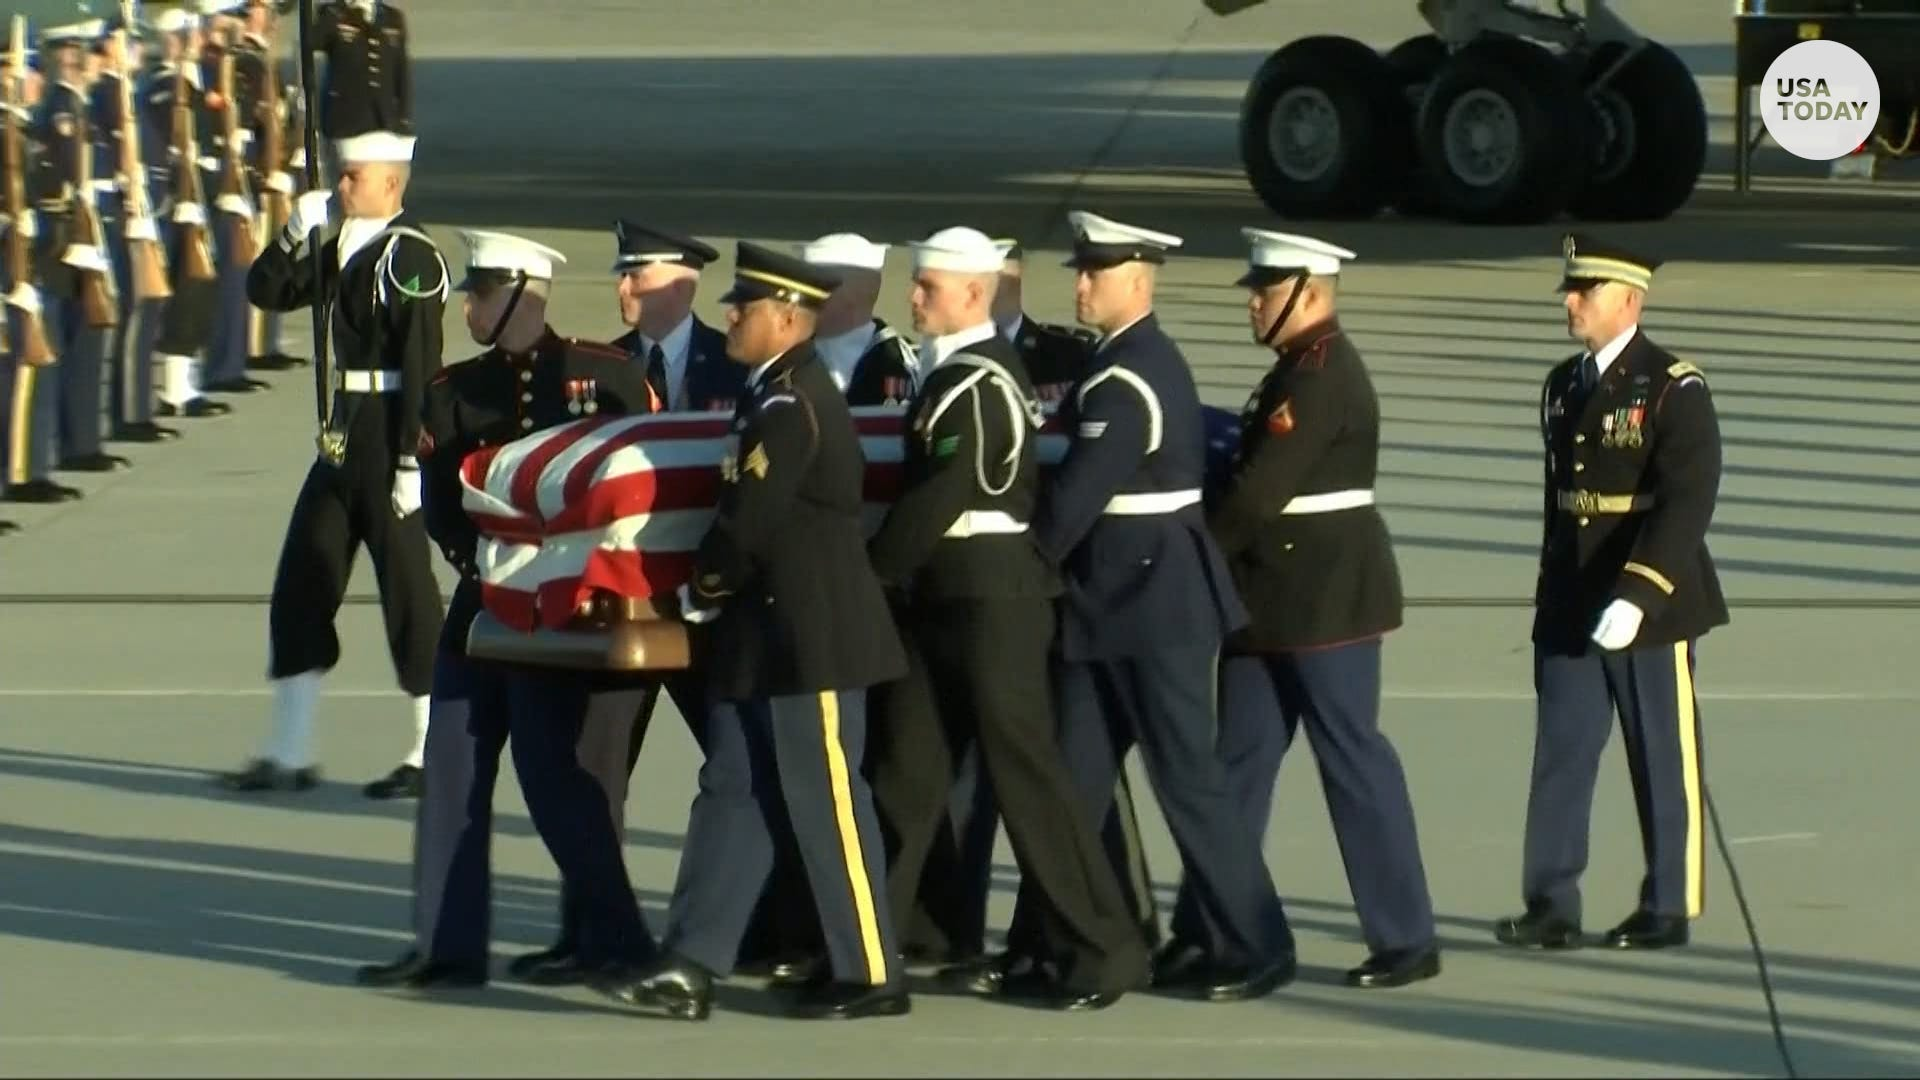 George H W  Bush's remains arrive at JBA for final farewell